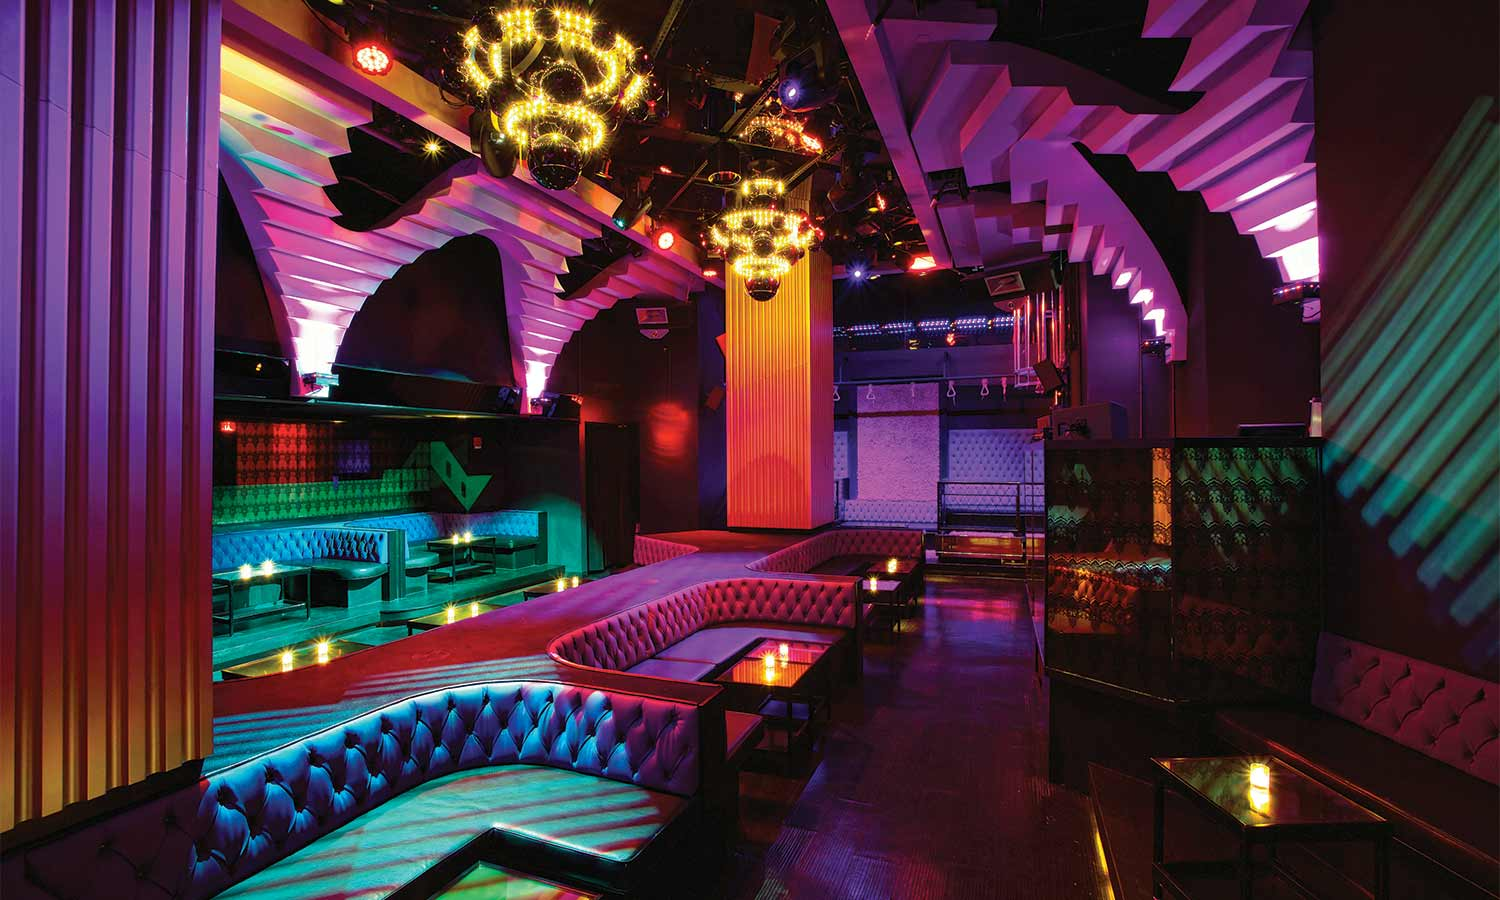 MEATPACKING-Provocateur-Club-Interior.jpg